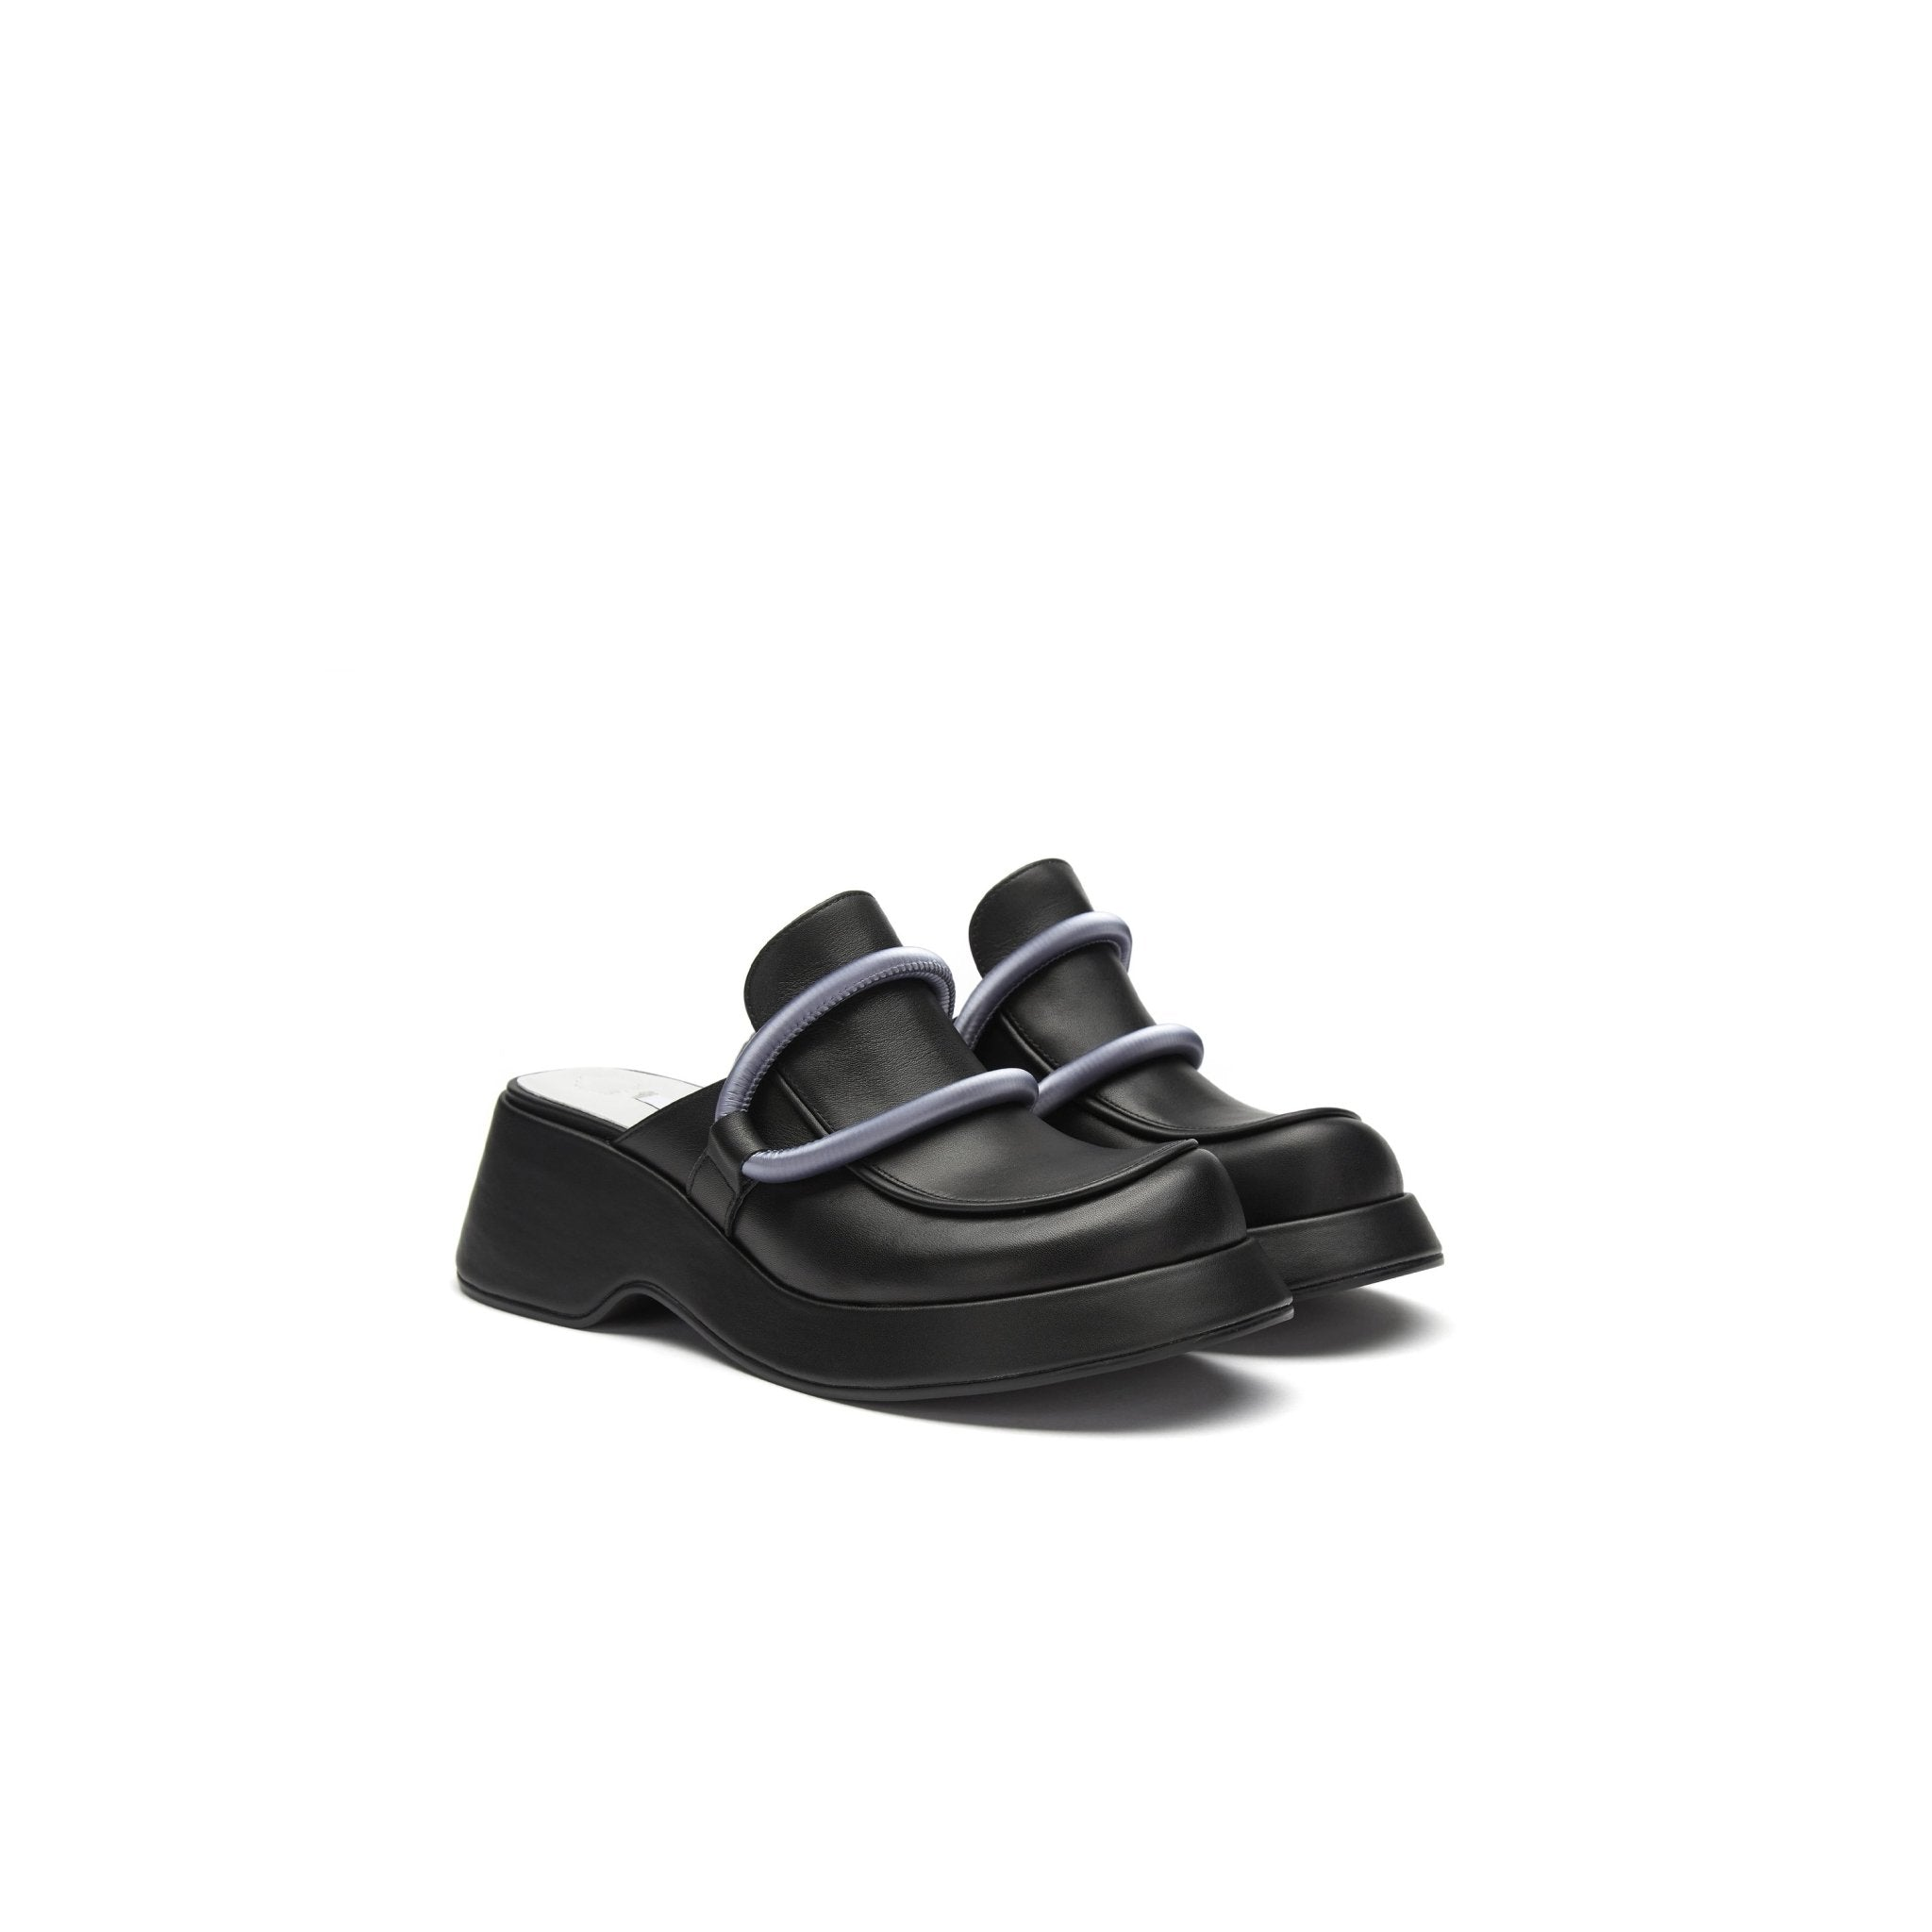 LOST IN ECHO Black Platform Loafers | MADA IN CHINA